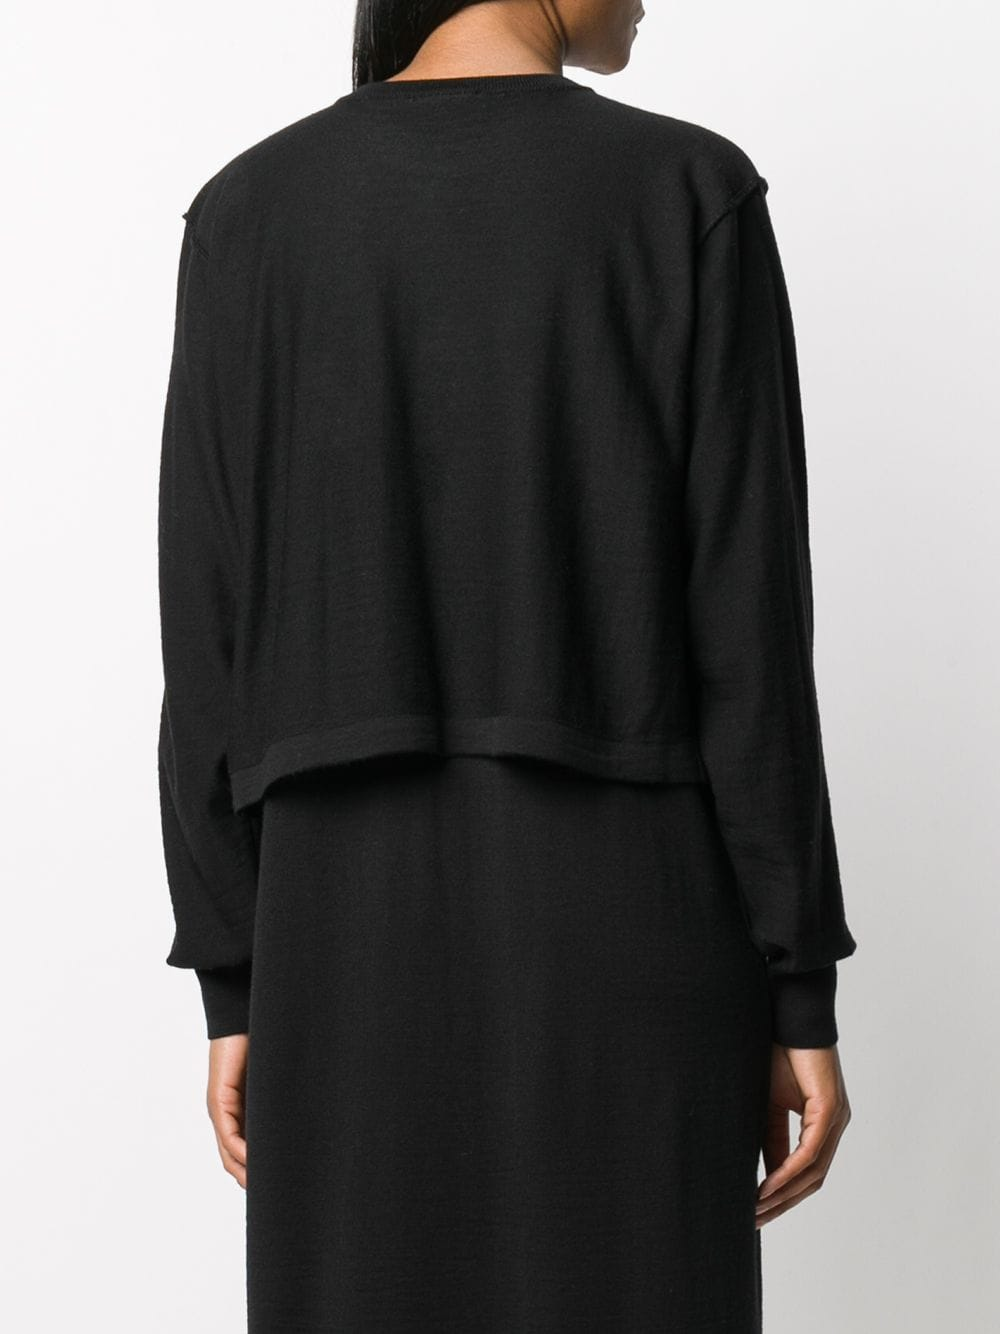 LEMAIRE |  | W203KN473LK087999